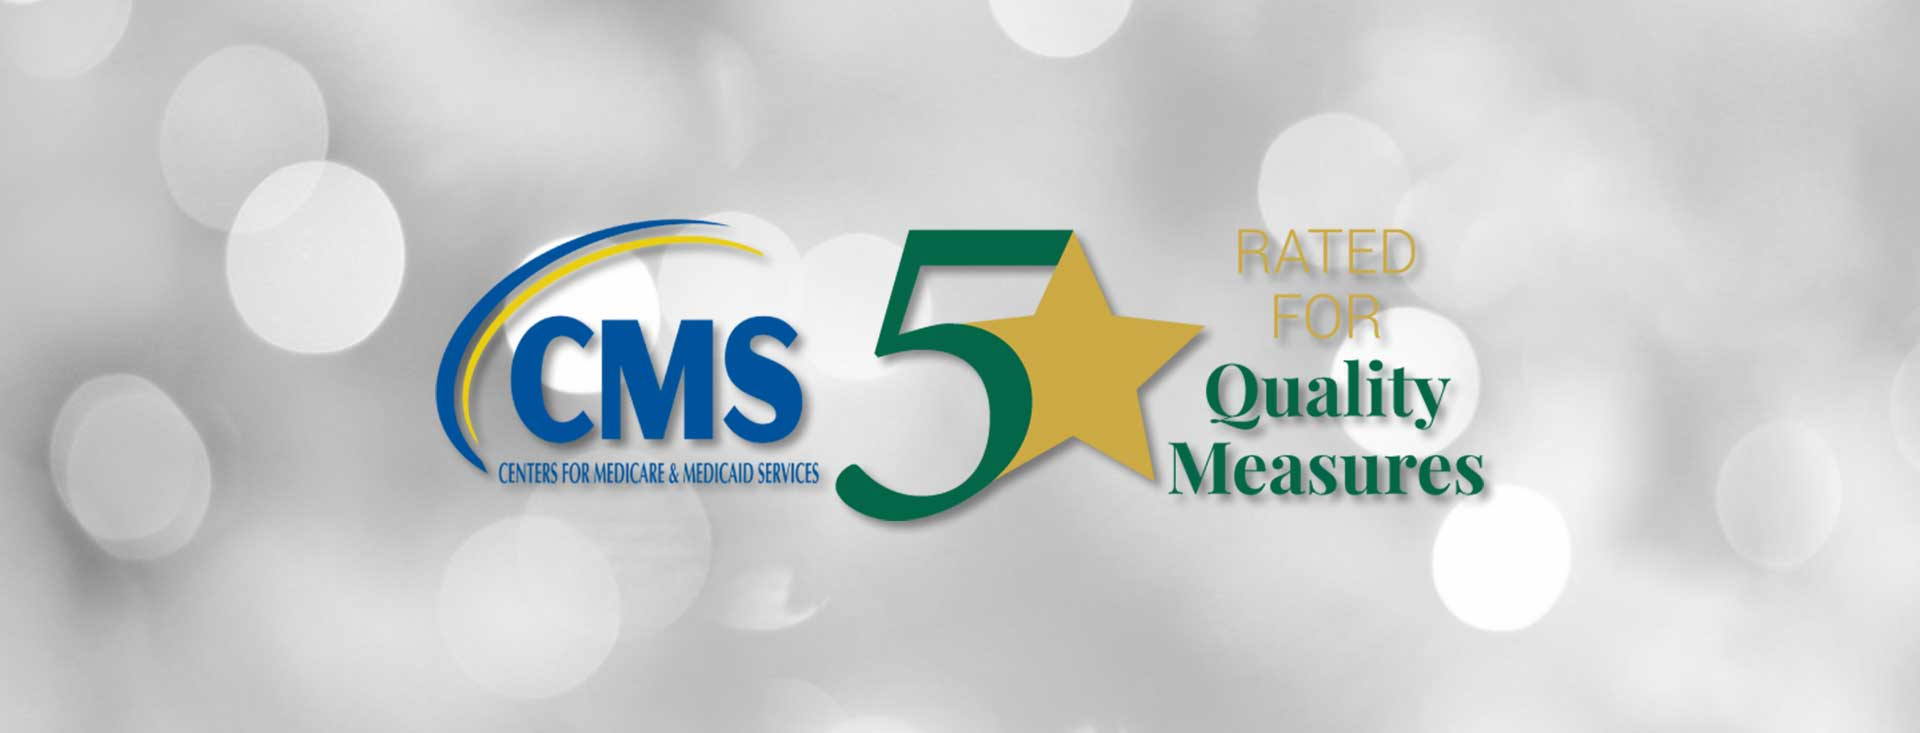 CMS 5 Star Rating for Quality Measures